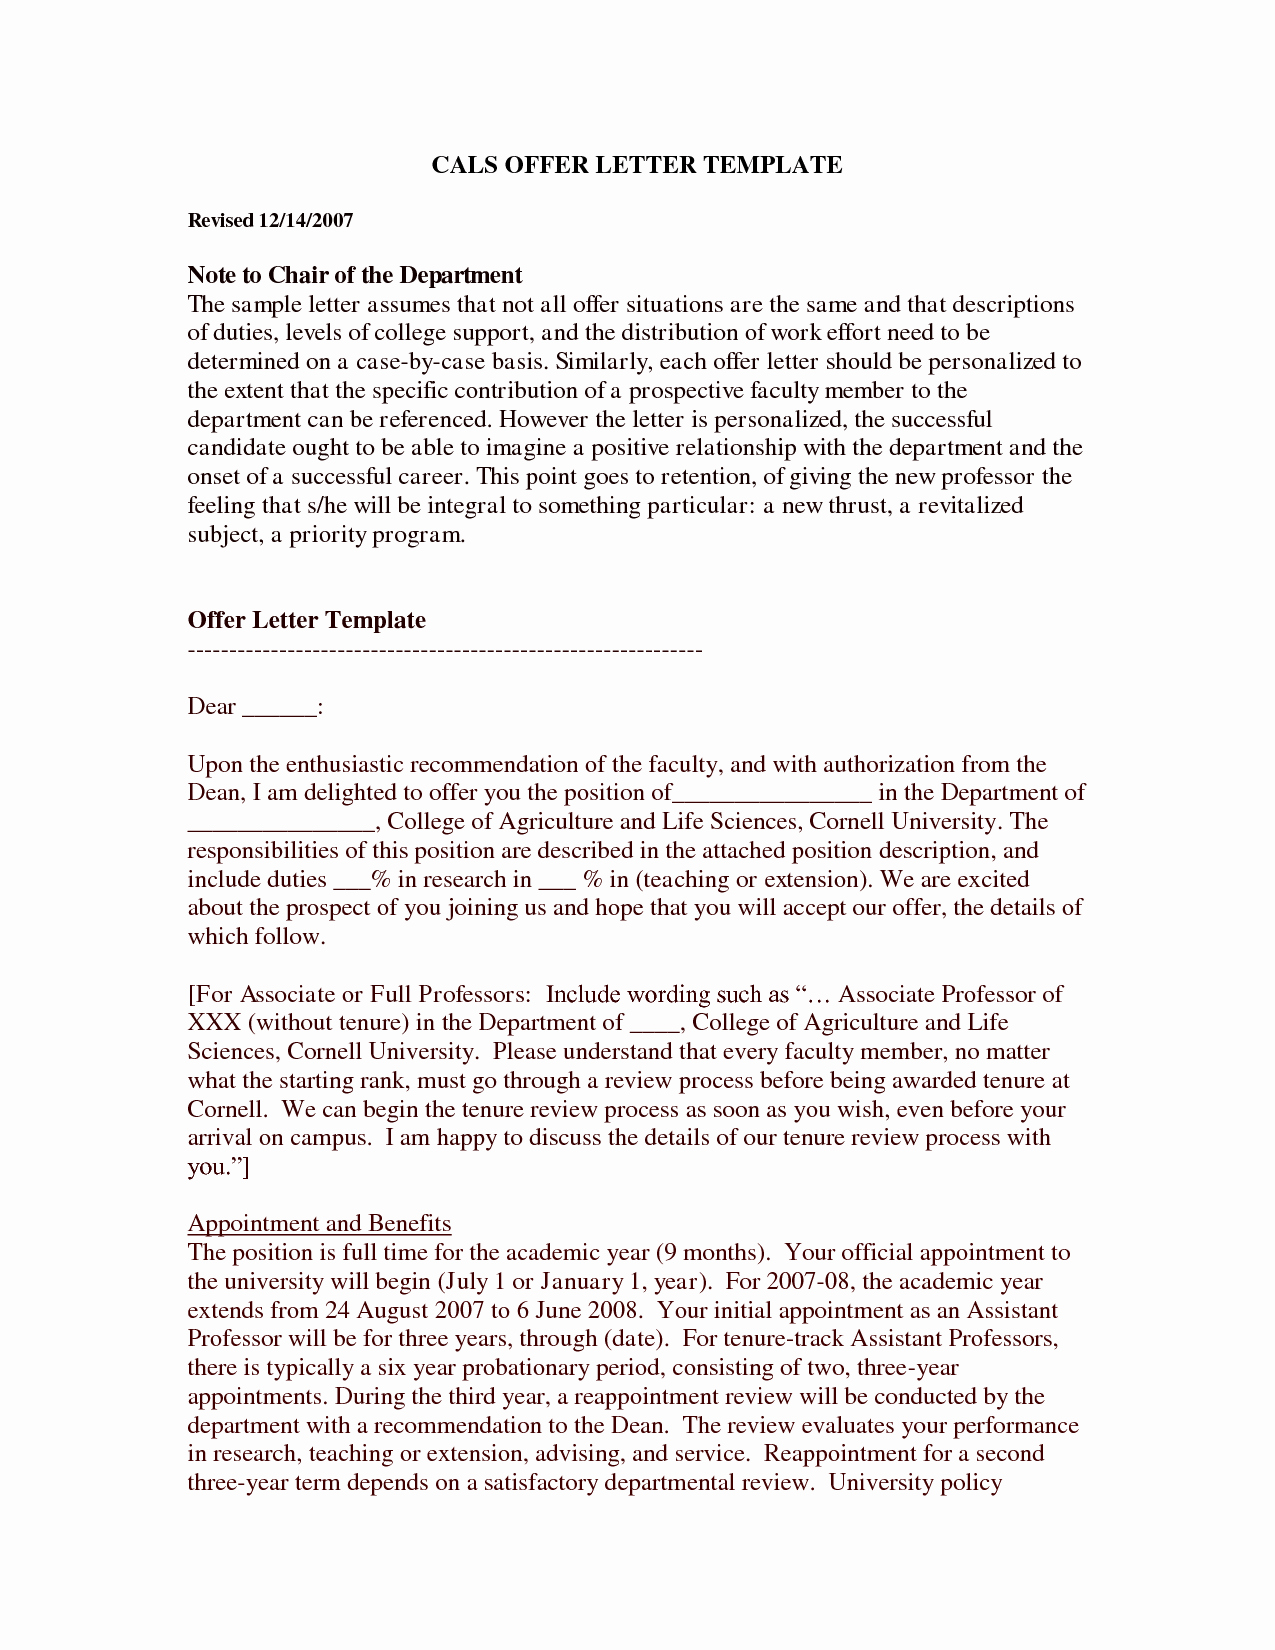 Real Estate Offer Letter Template Free Elegant Free Printable Fer Letter Template form Generic